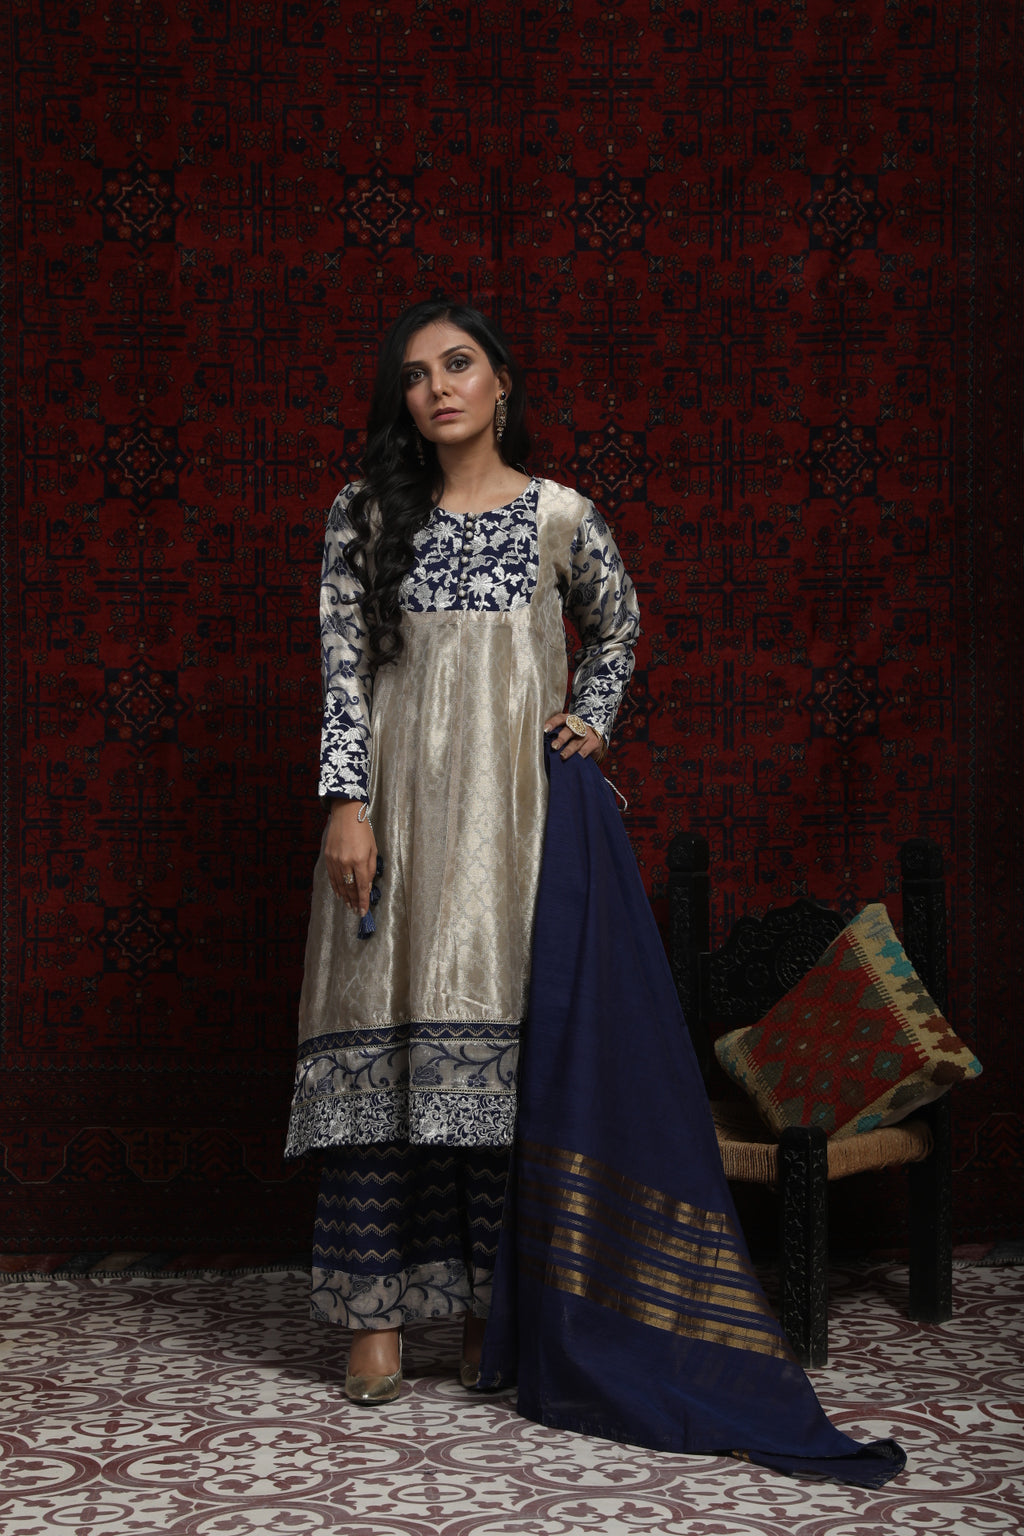 LDD-01690 | Metallic Beige & Blue | Formal 3 Piece Suit  | Banarsi Jacquard (Metallic)